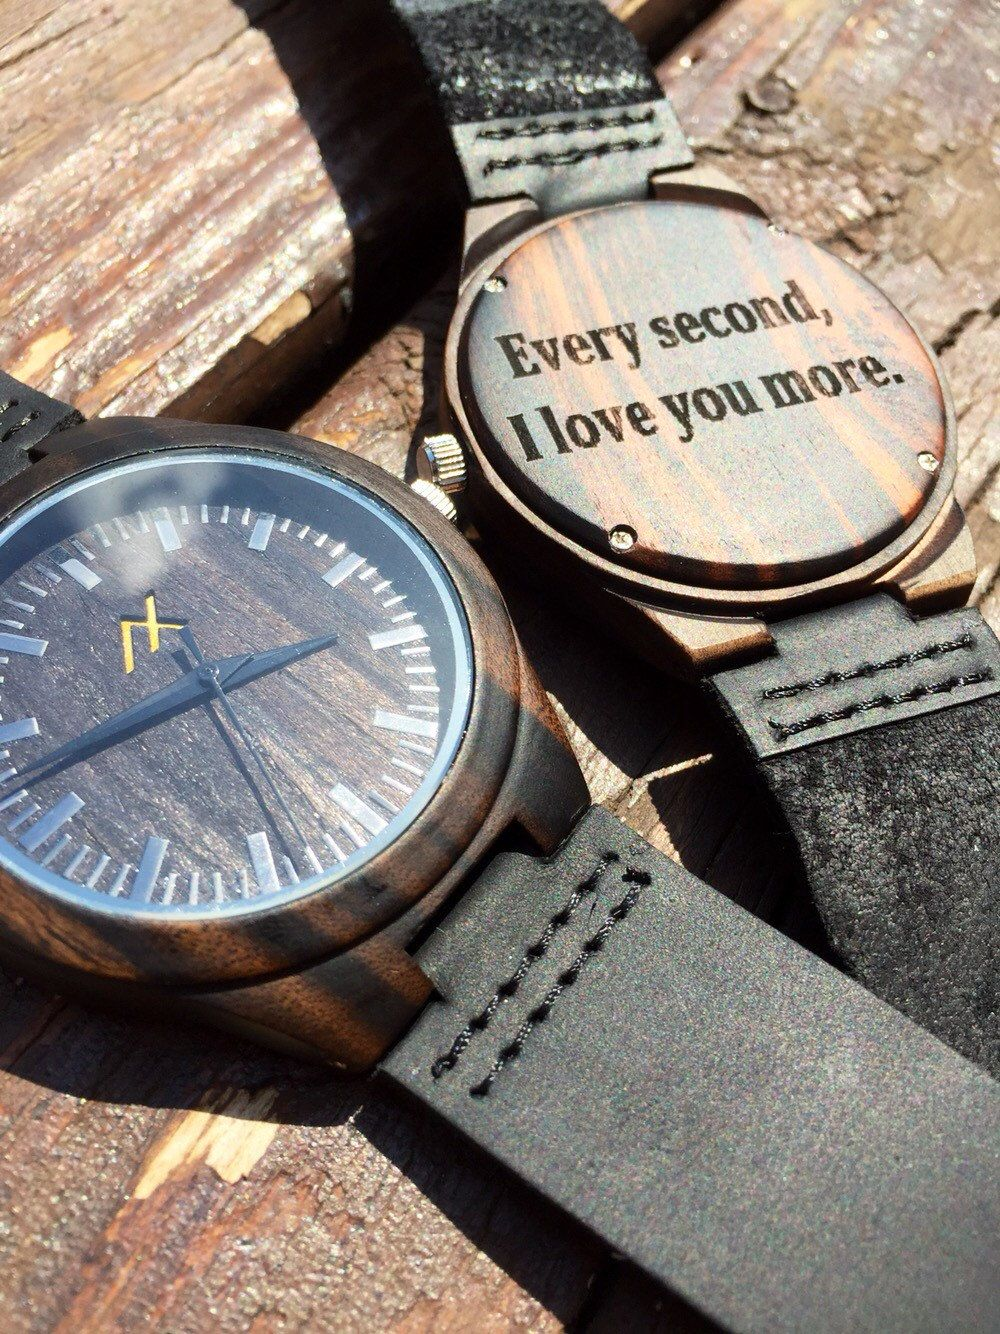 ideas custom design modern wood for creation gifts base sample wedding personalized watches nice bless mens wooden groomsmen